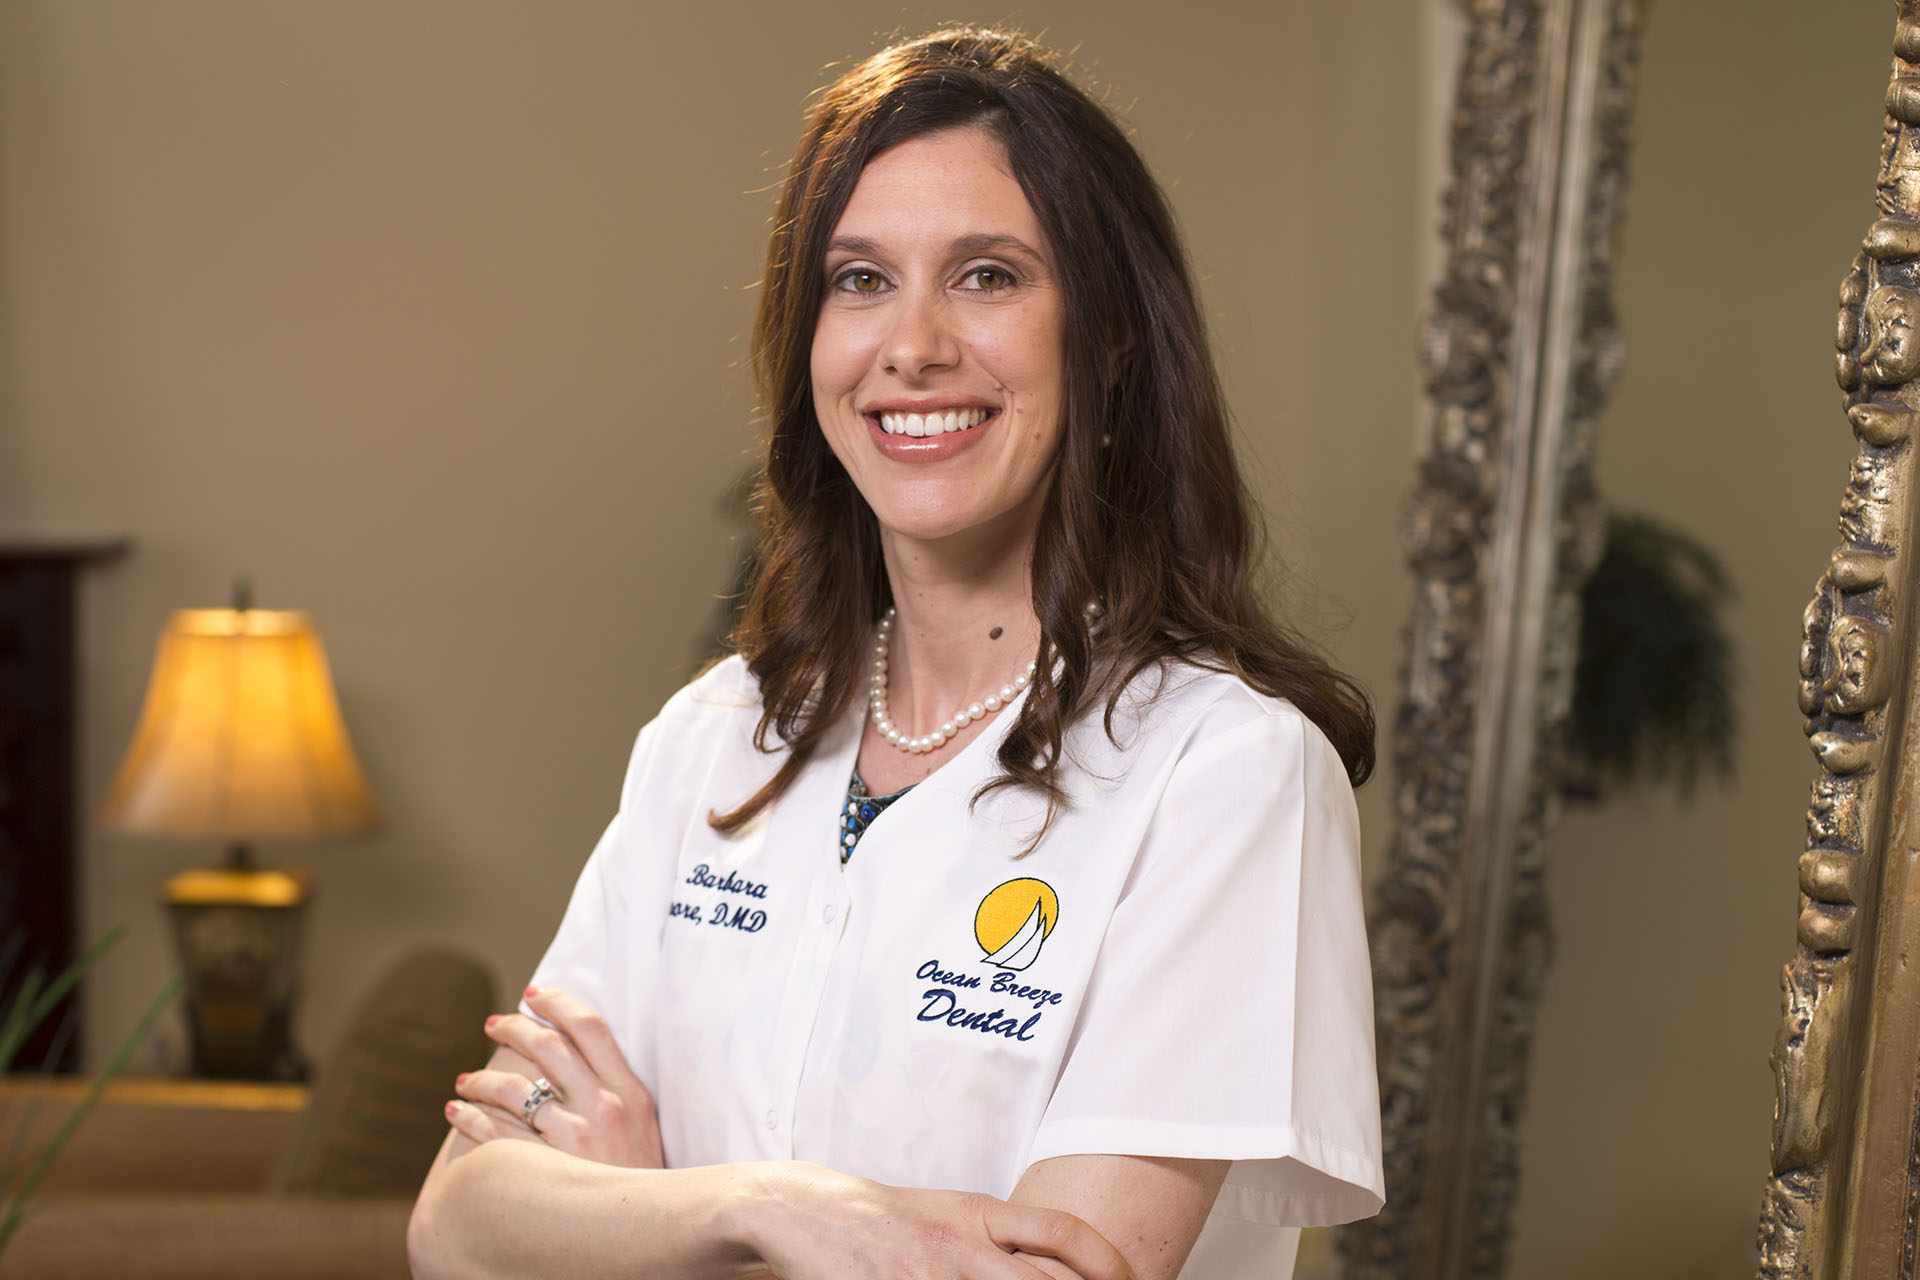 Dr. Barbara Wetmore, DMD Cosmetic and Restorative Dentist